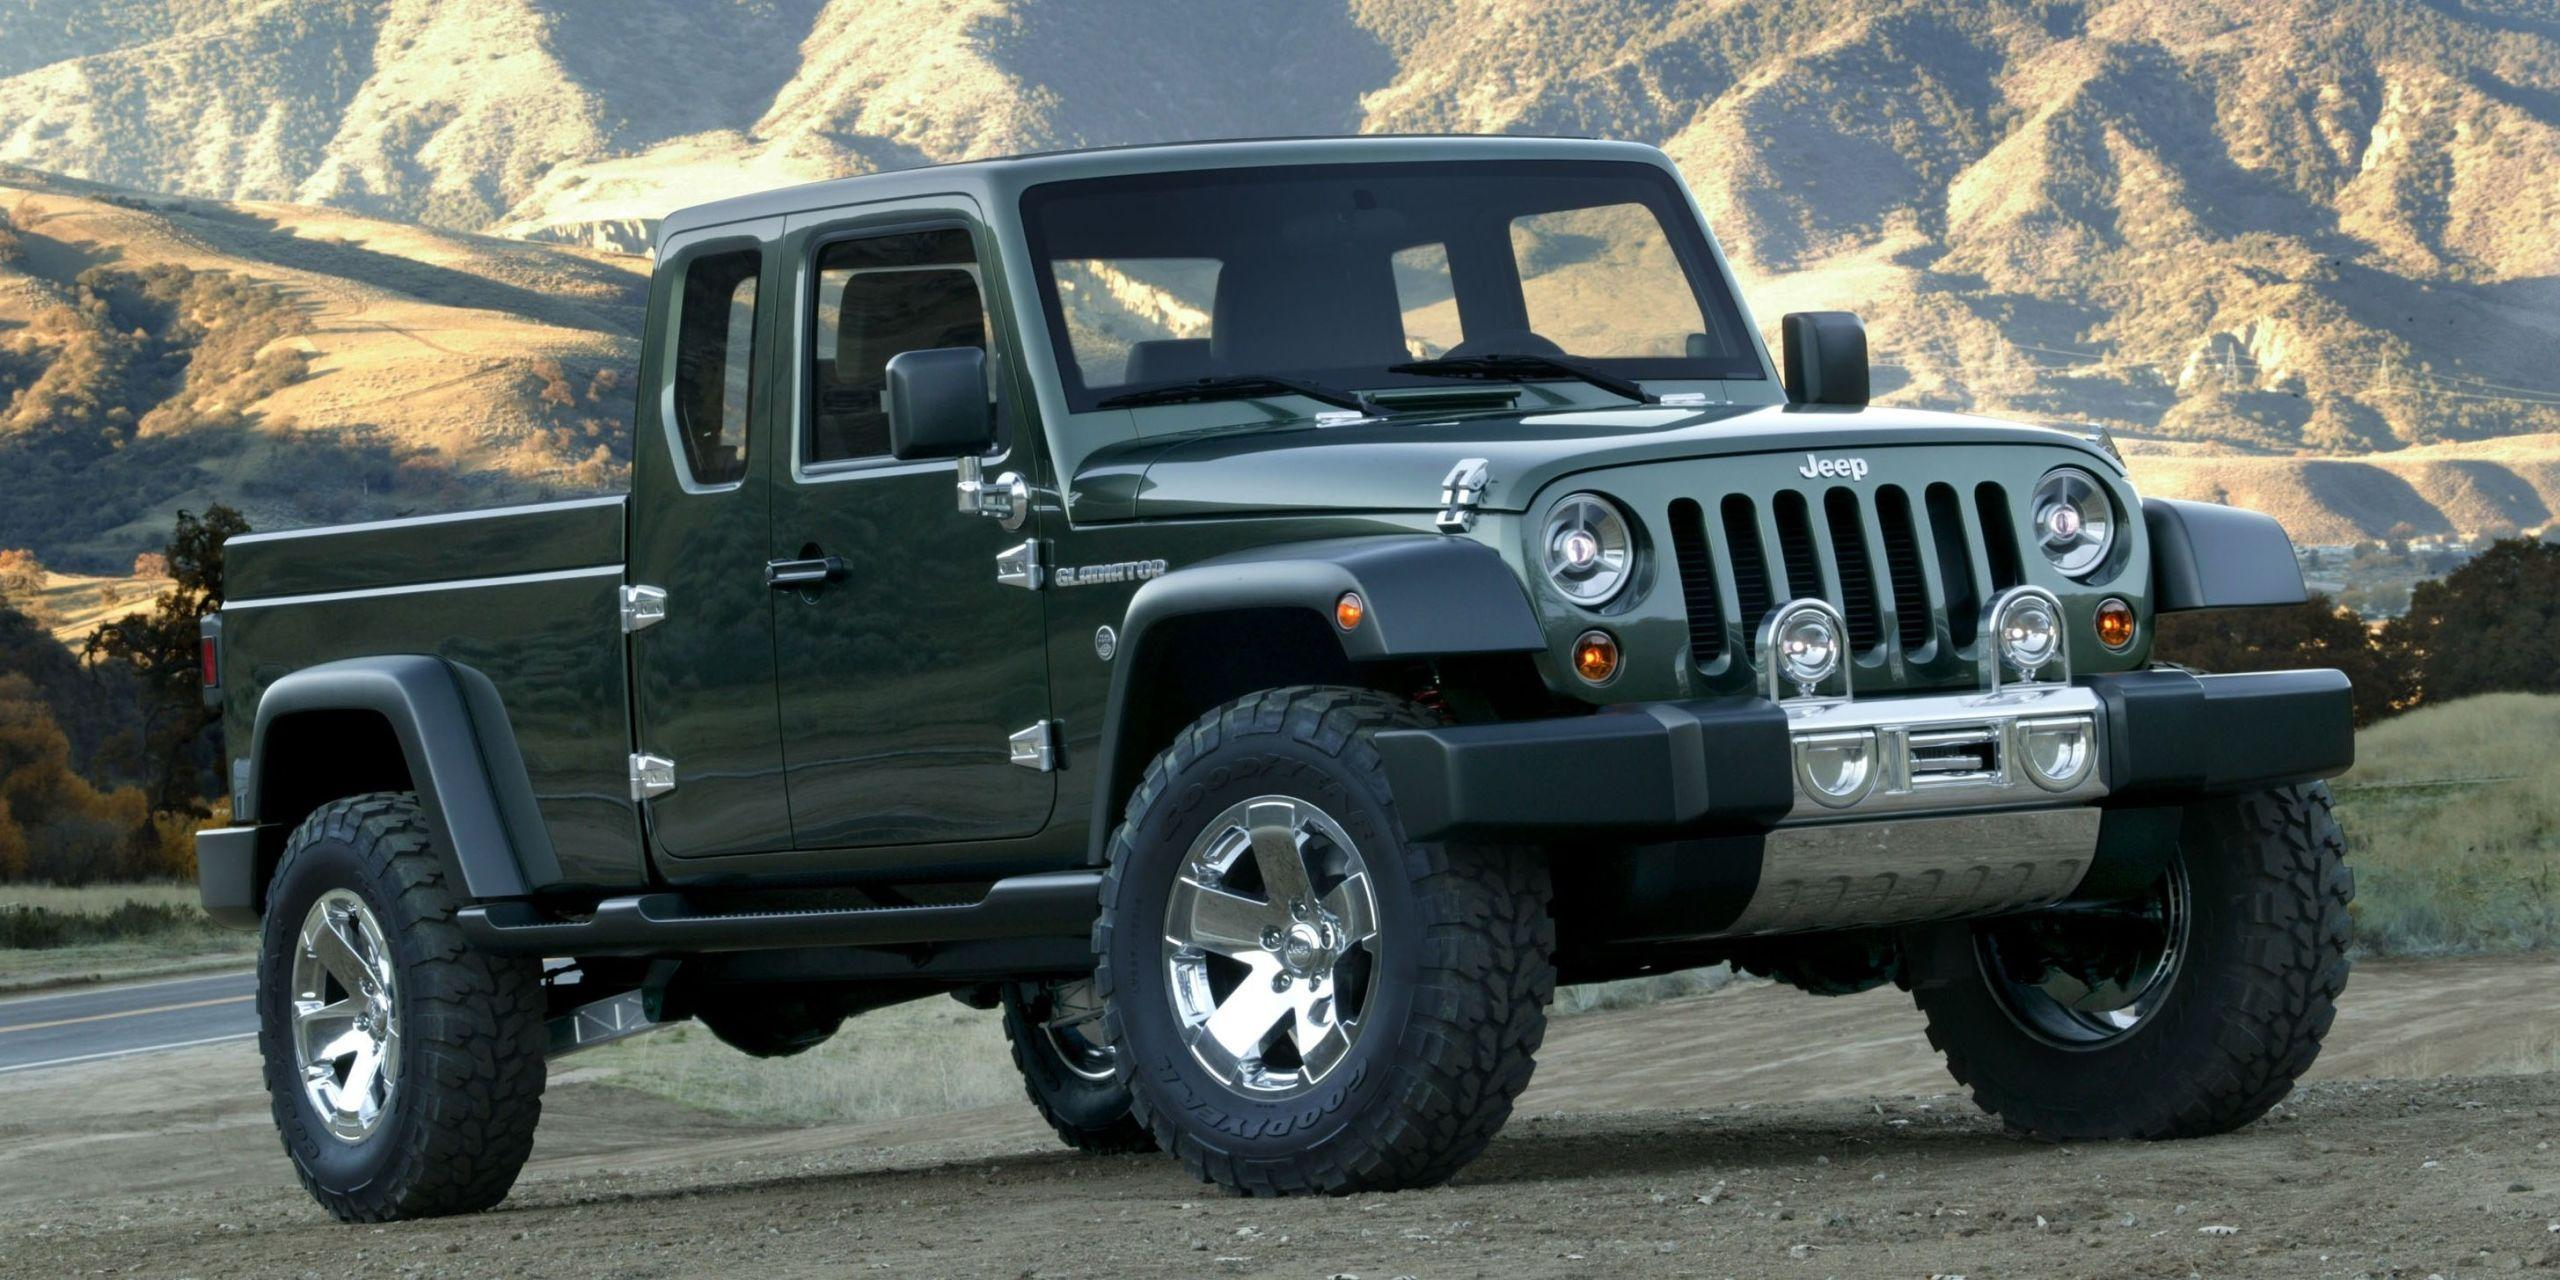 Report: Next-Gen Jeep Wrangler Getting Diesel, Hybrid, and Truck Versions